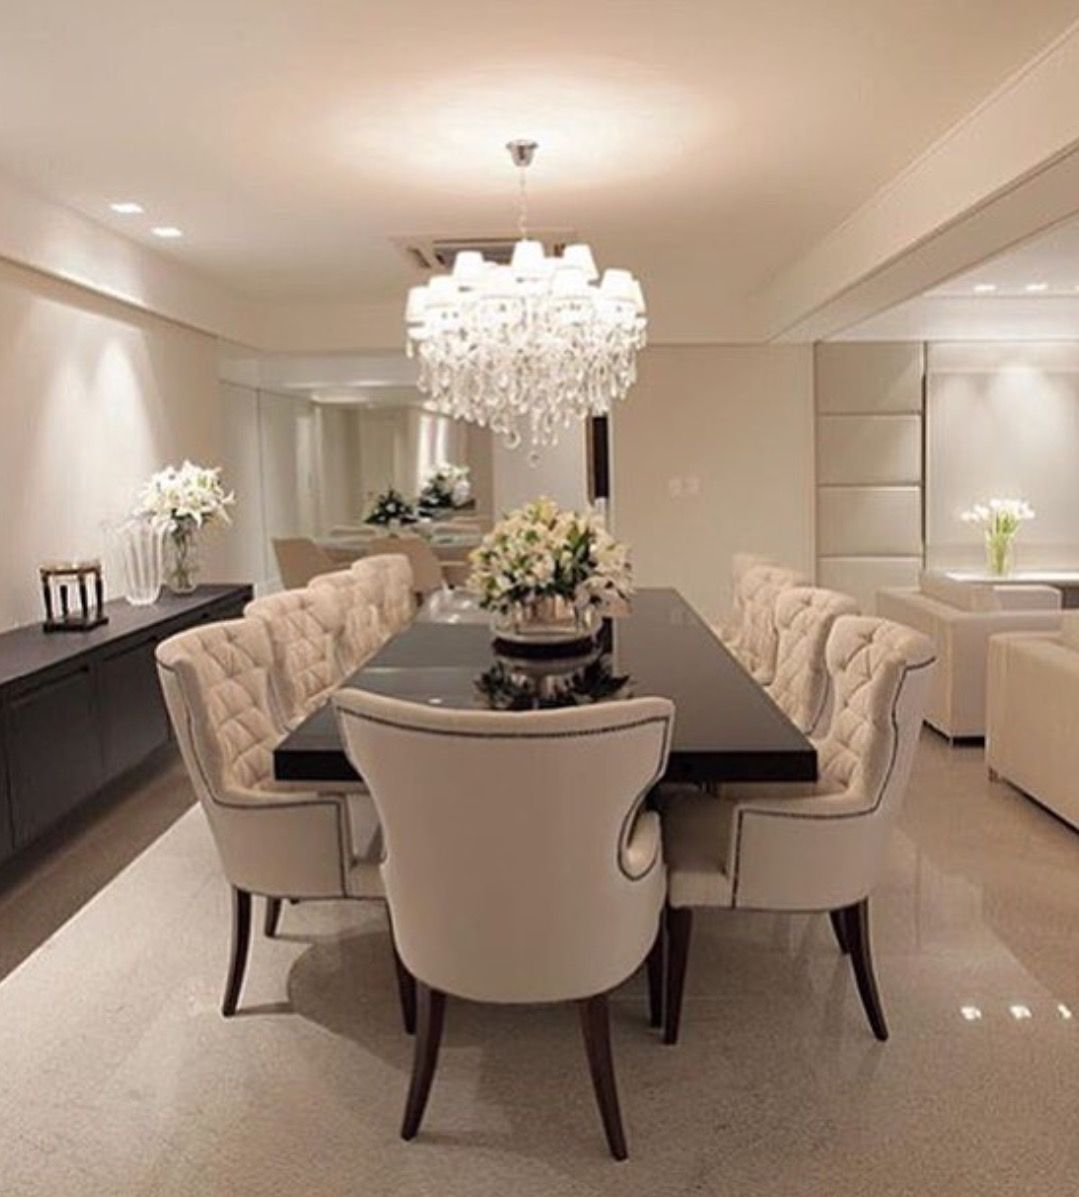 Pin By Vicky On House Pinterest Room Dining And House -> Sala Simples Clean